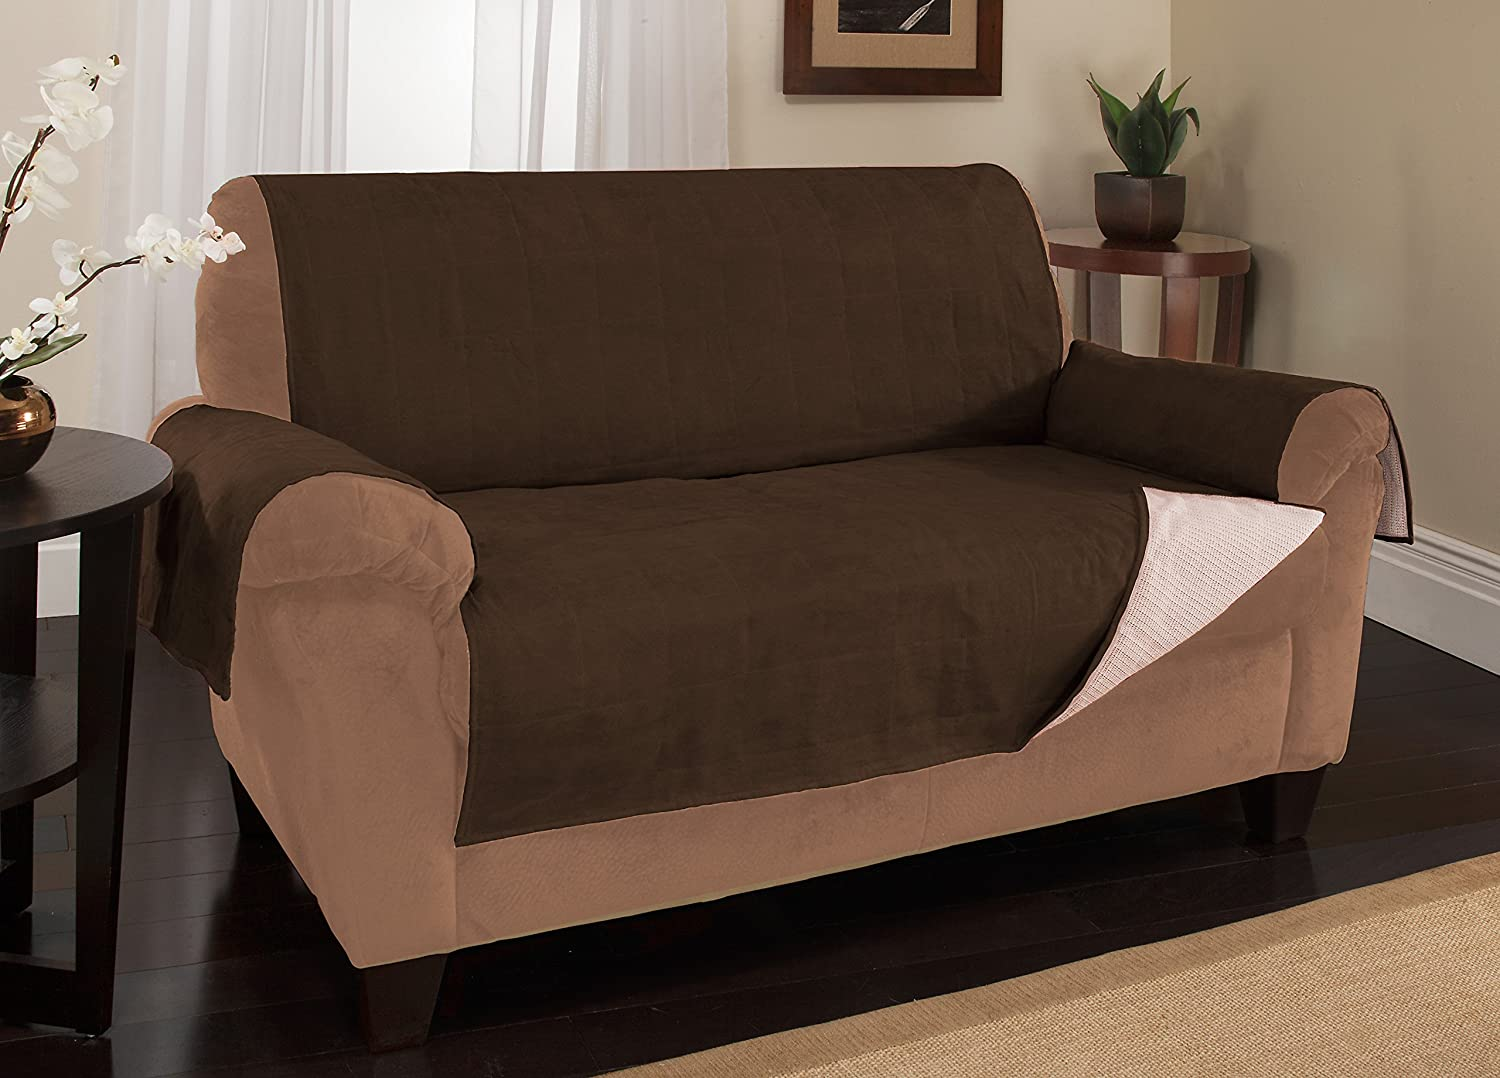 Stay-Put Straps Link Shades Anti-Slip Xtra Large Sofa Protector Cover Protects Couches from Dogs /& Other Pets Water Resistant Microsuede Slipcover XL Sofa, up to 86 seat size, Chocolate